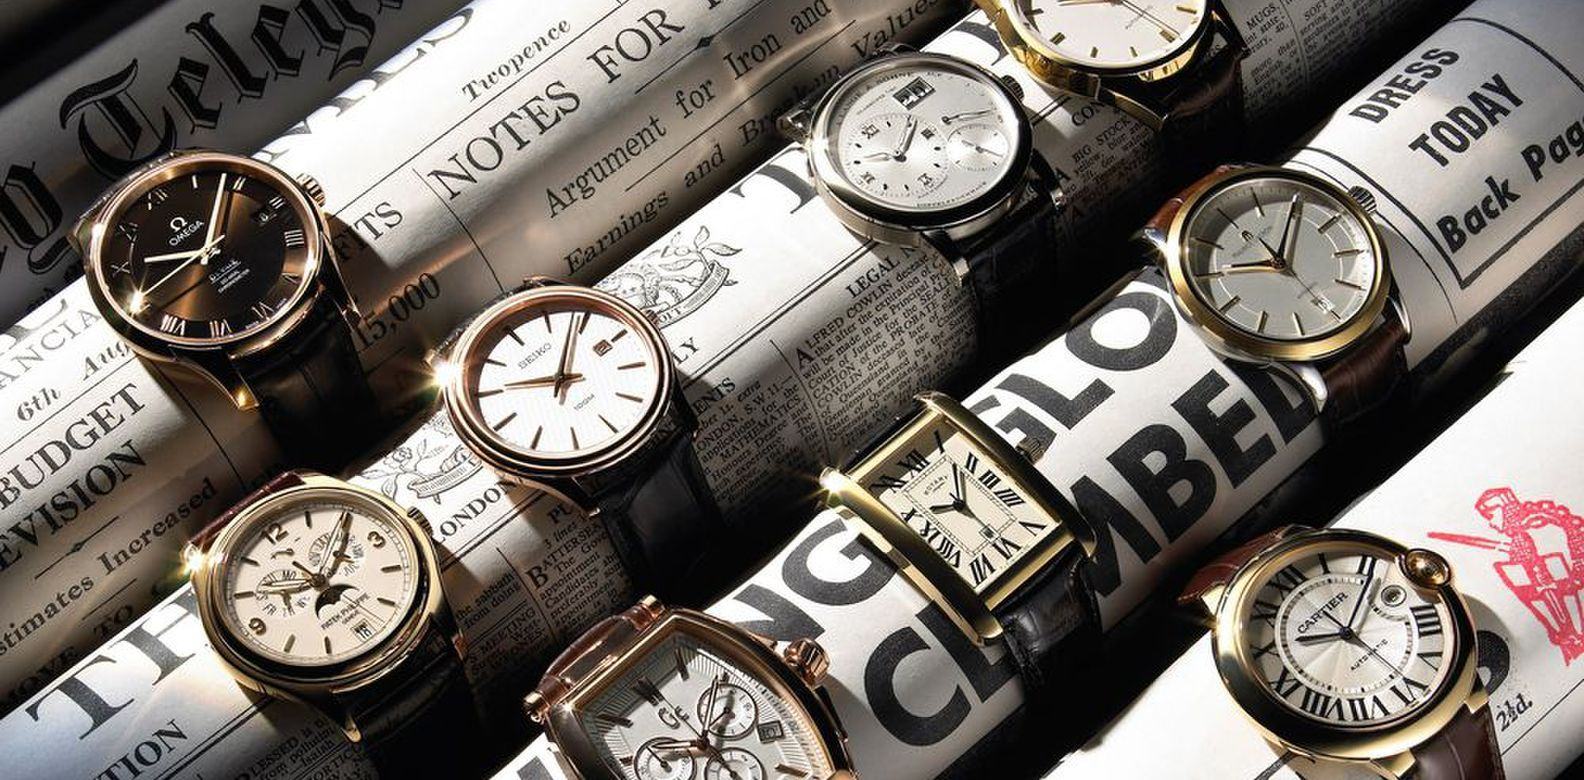 Luxglove's Guide to Building A Watch Collection ...